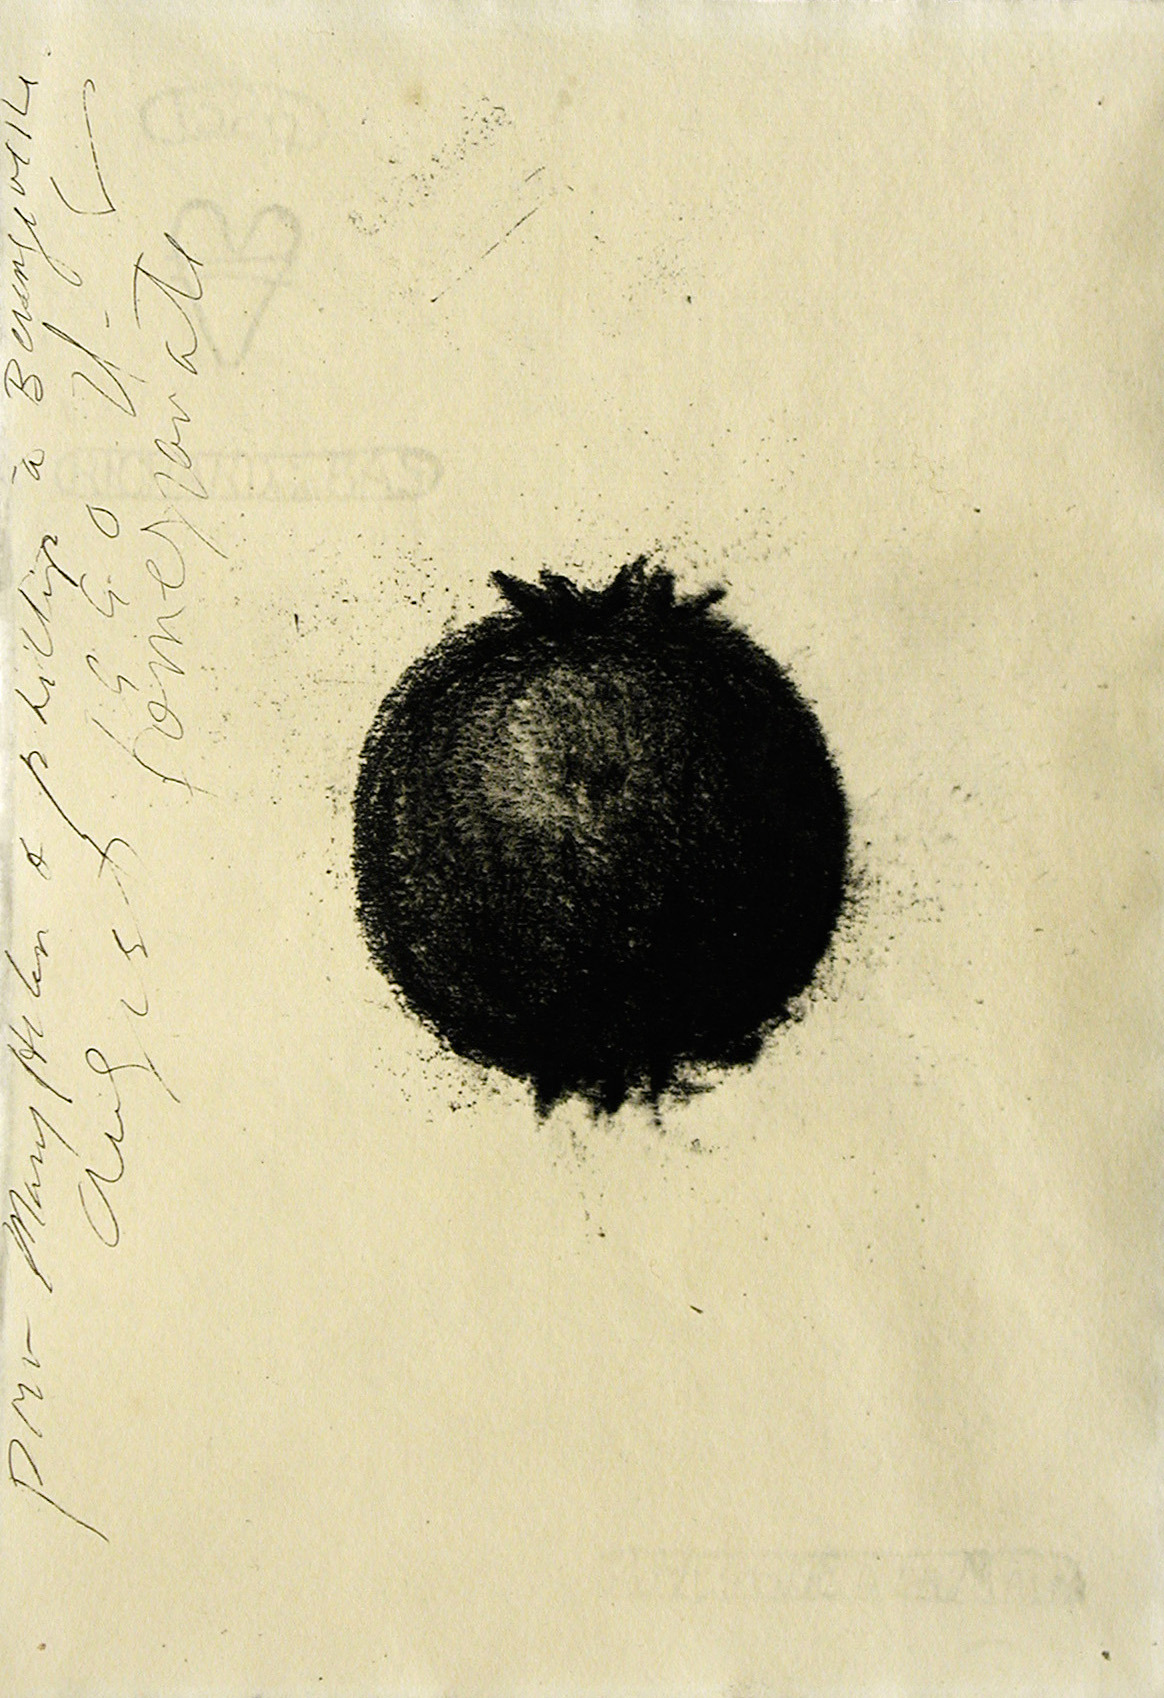 mondonoir:  Donald Sultan, Untitled (Pomegranate), Charcoal on paper, 1990